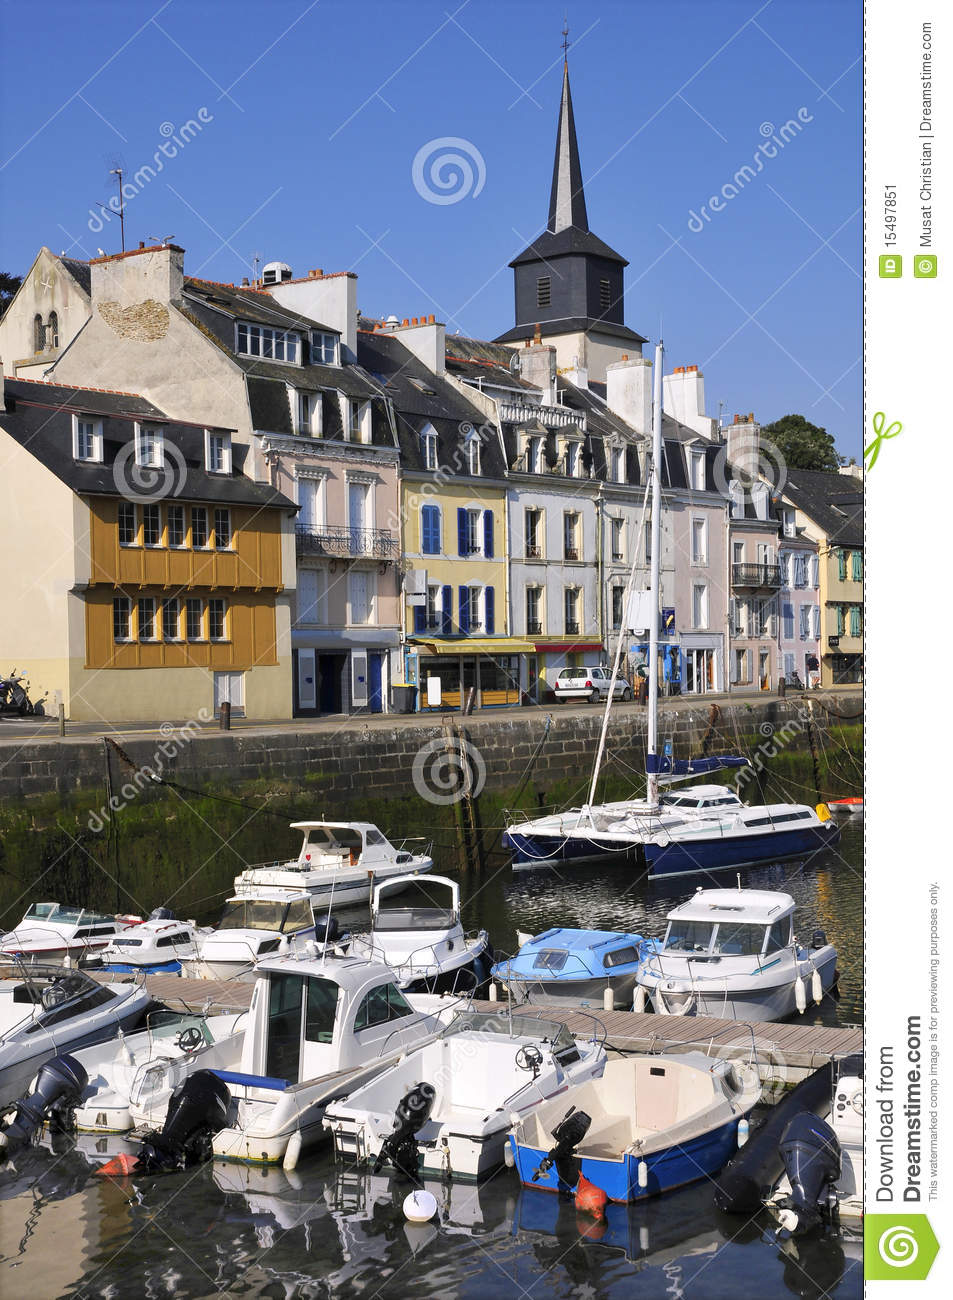 Port de le palais la belle ile en france image stock - Belle piscine ile de france ...